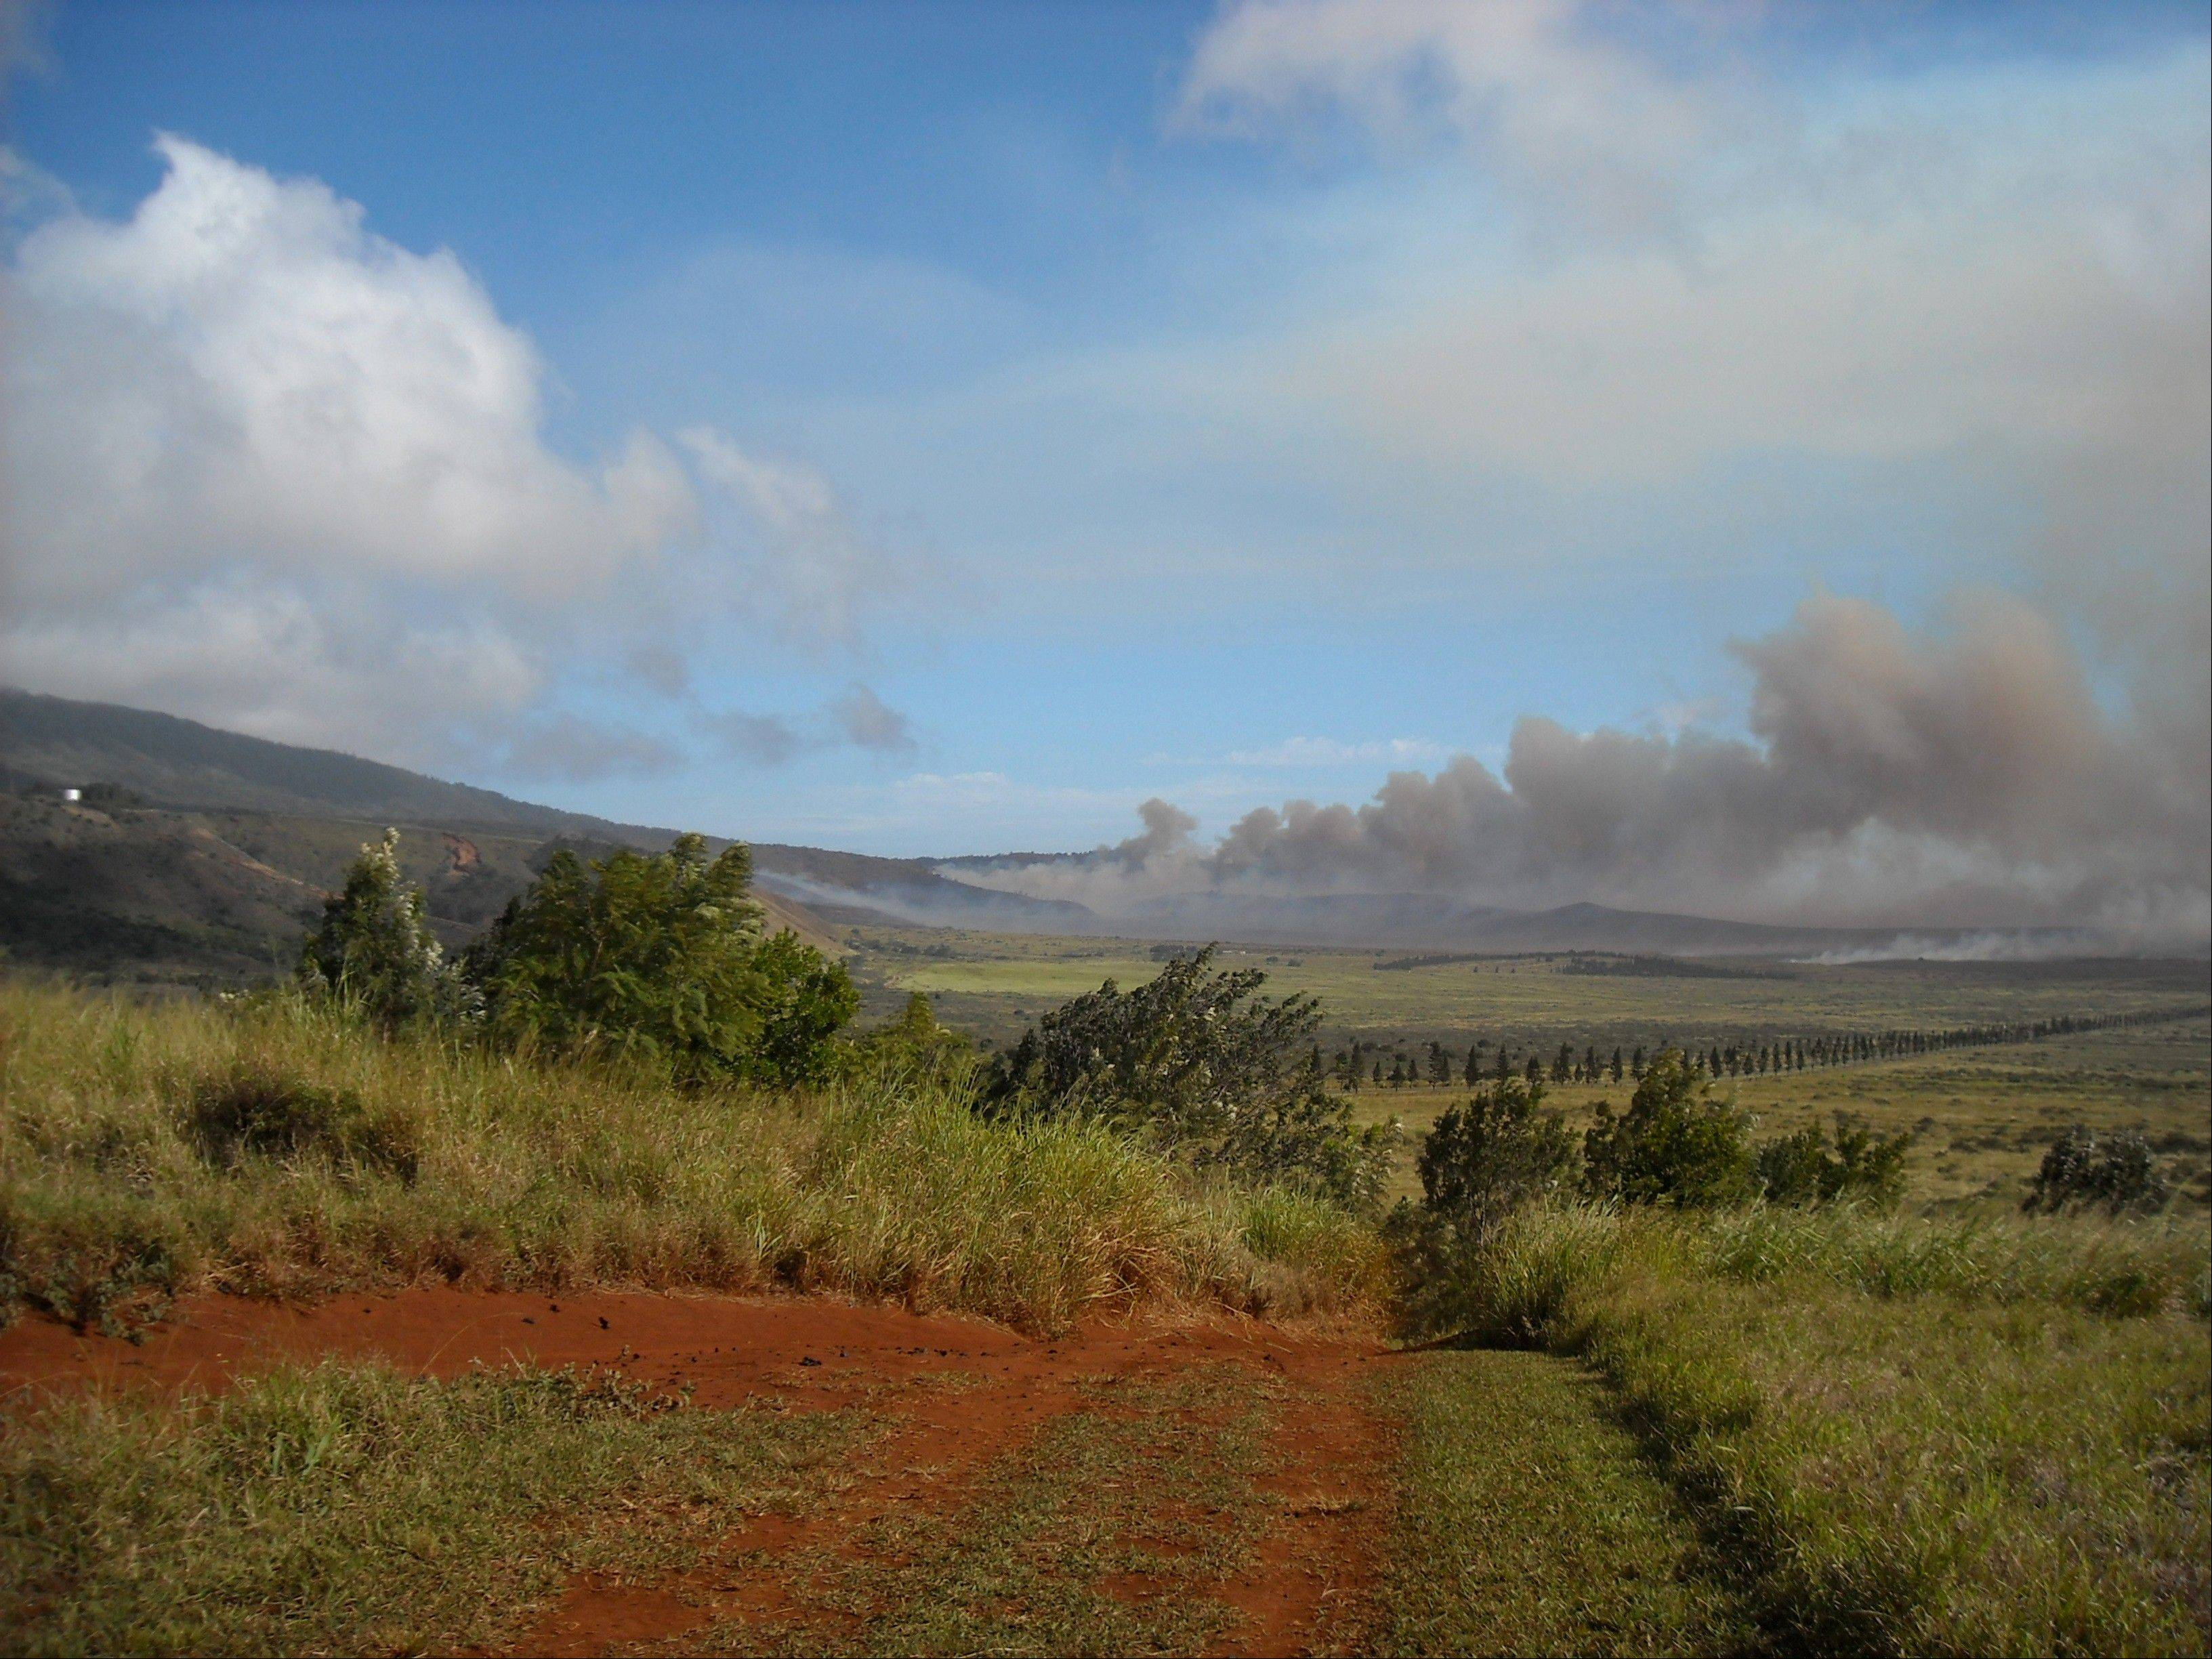 In this 2008 photo, a brush fire burns on the island of Lanai, Hawaii. Oracle Corp. CEO Larry Ellison has reached a deal to buy 98 percent of the island of Lanai, Gov. Neil Abercrombie said Wednesday, June 20, 2012.